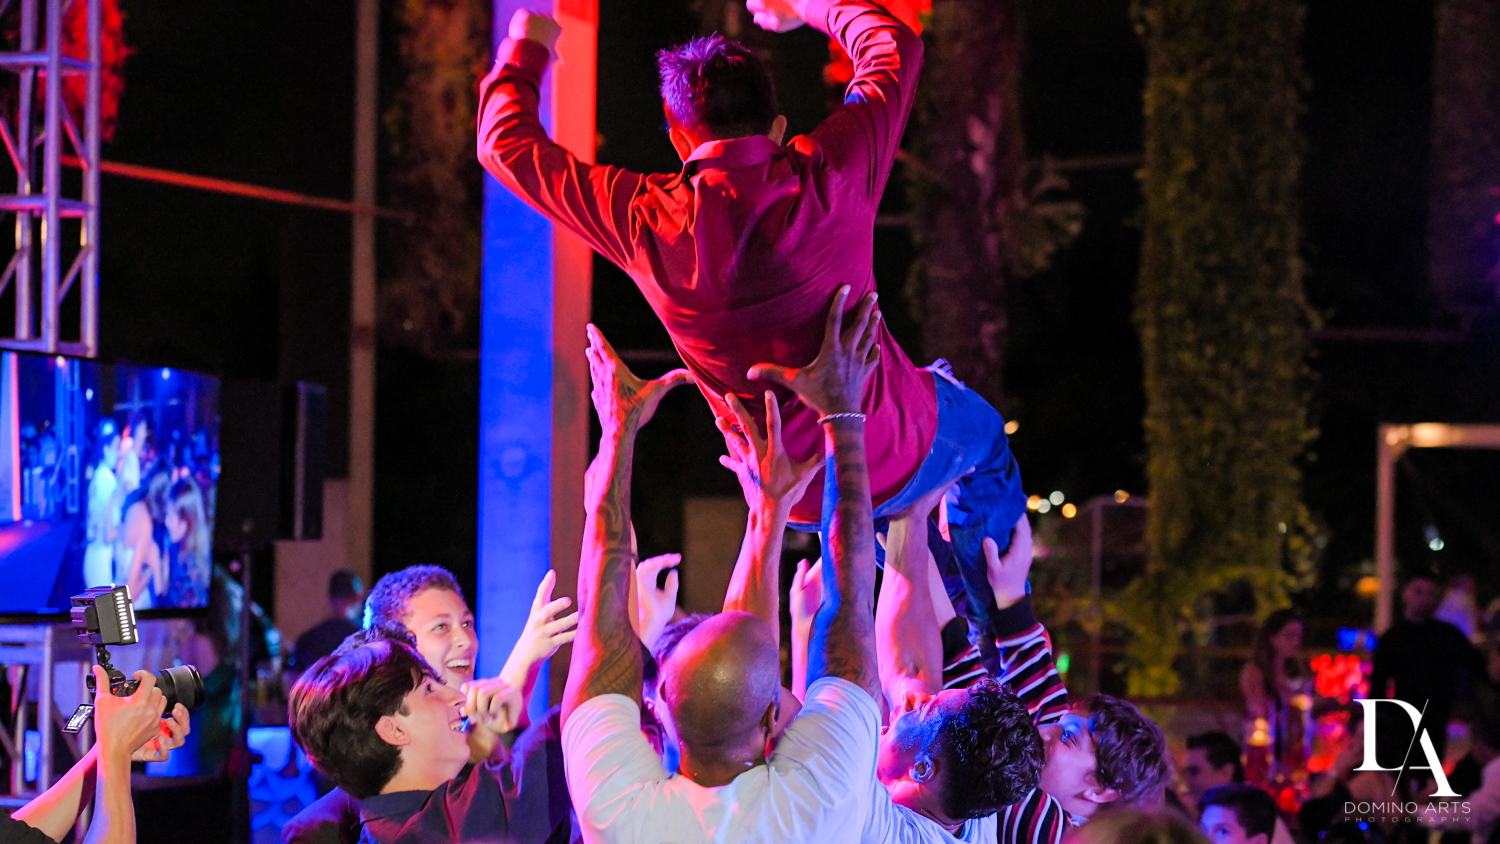 crowd surfing at Fire & Ice B'Nai Mitzvah at Perez Art Museum Miami by Domino Arts Photography